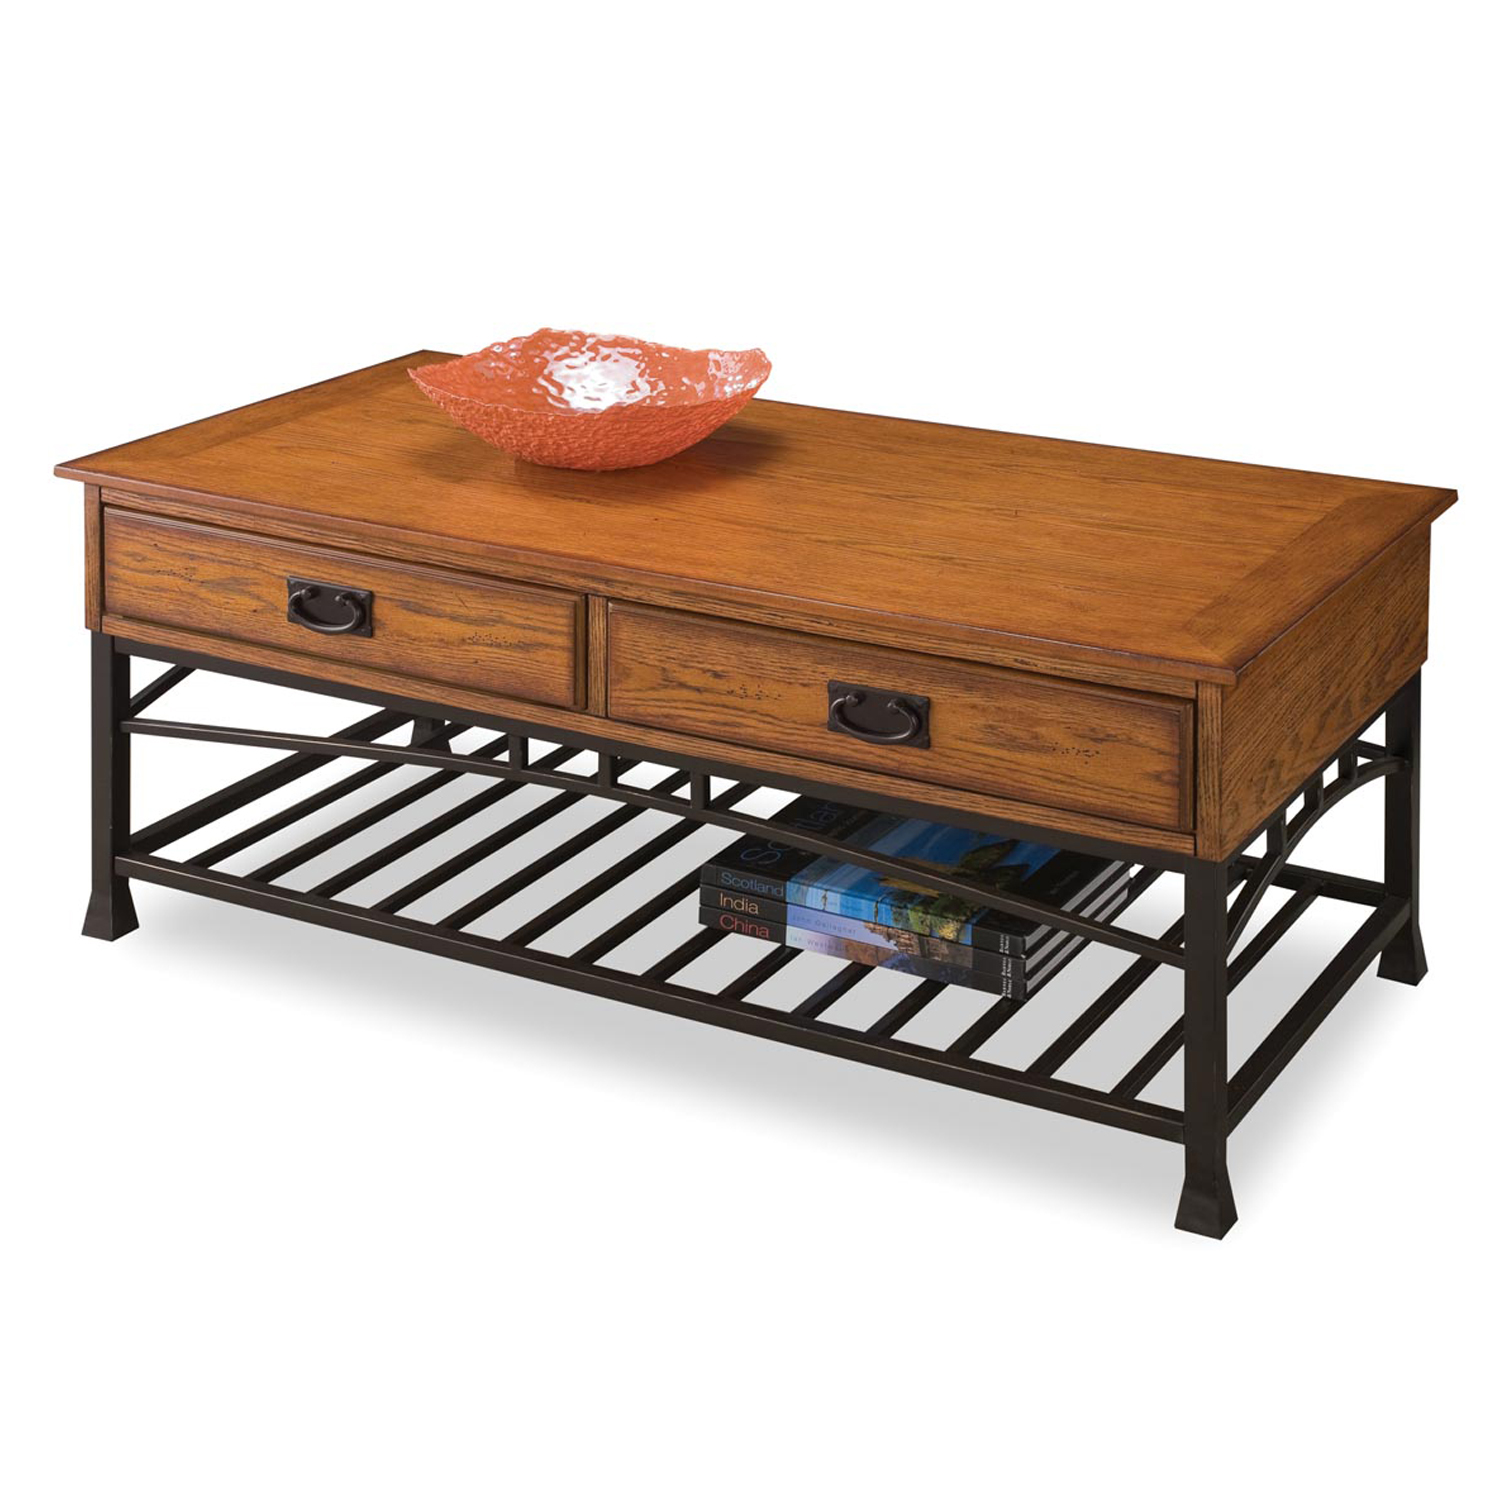 Modern Craftsman Distressed Oak Coffee Table, DISTRESSED OAK